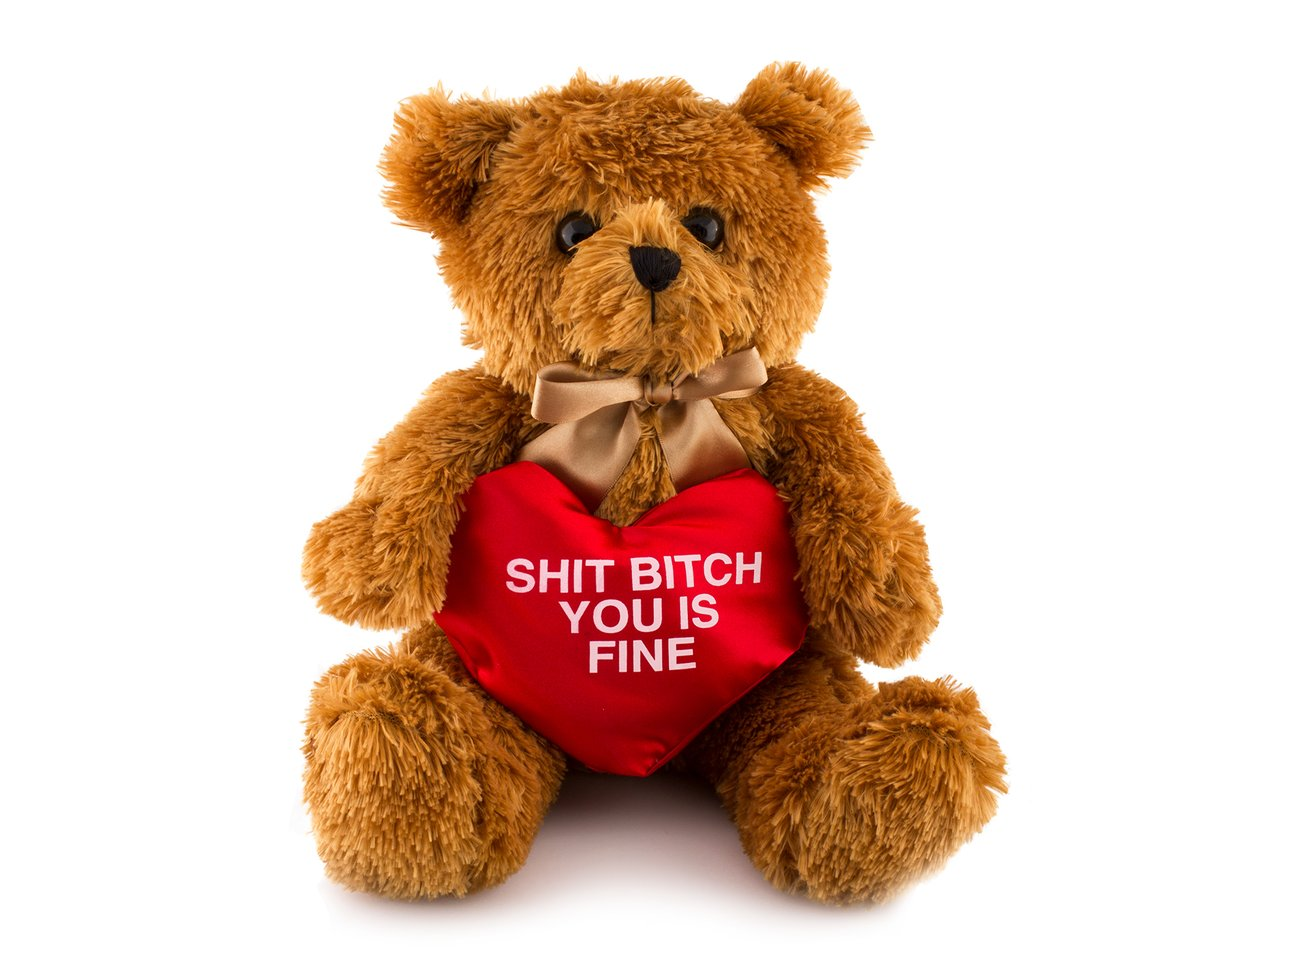 'Shit Bitch You Is Fine' Teddy Bear